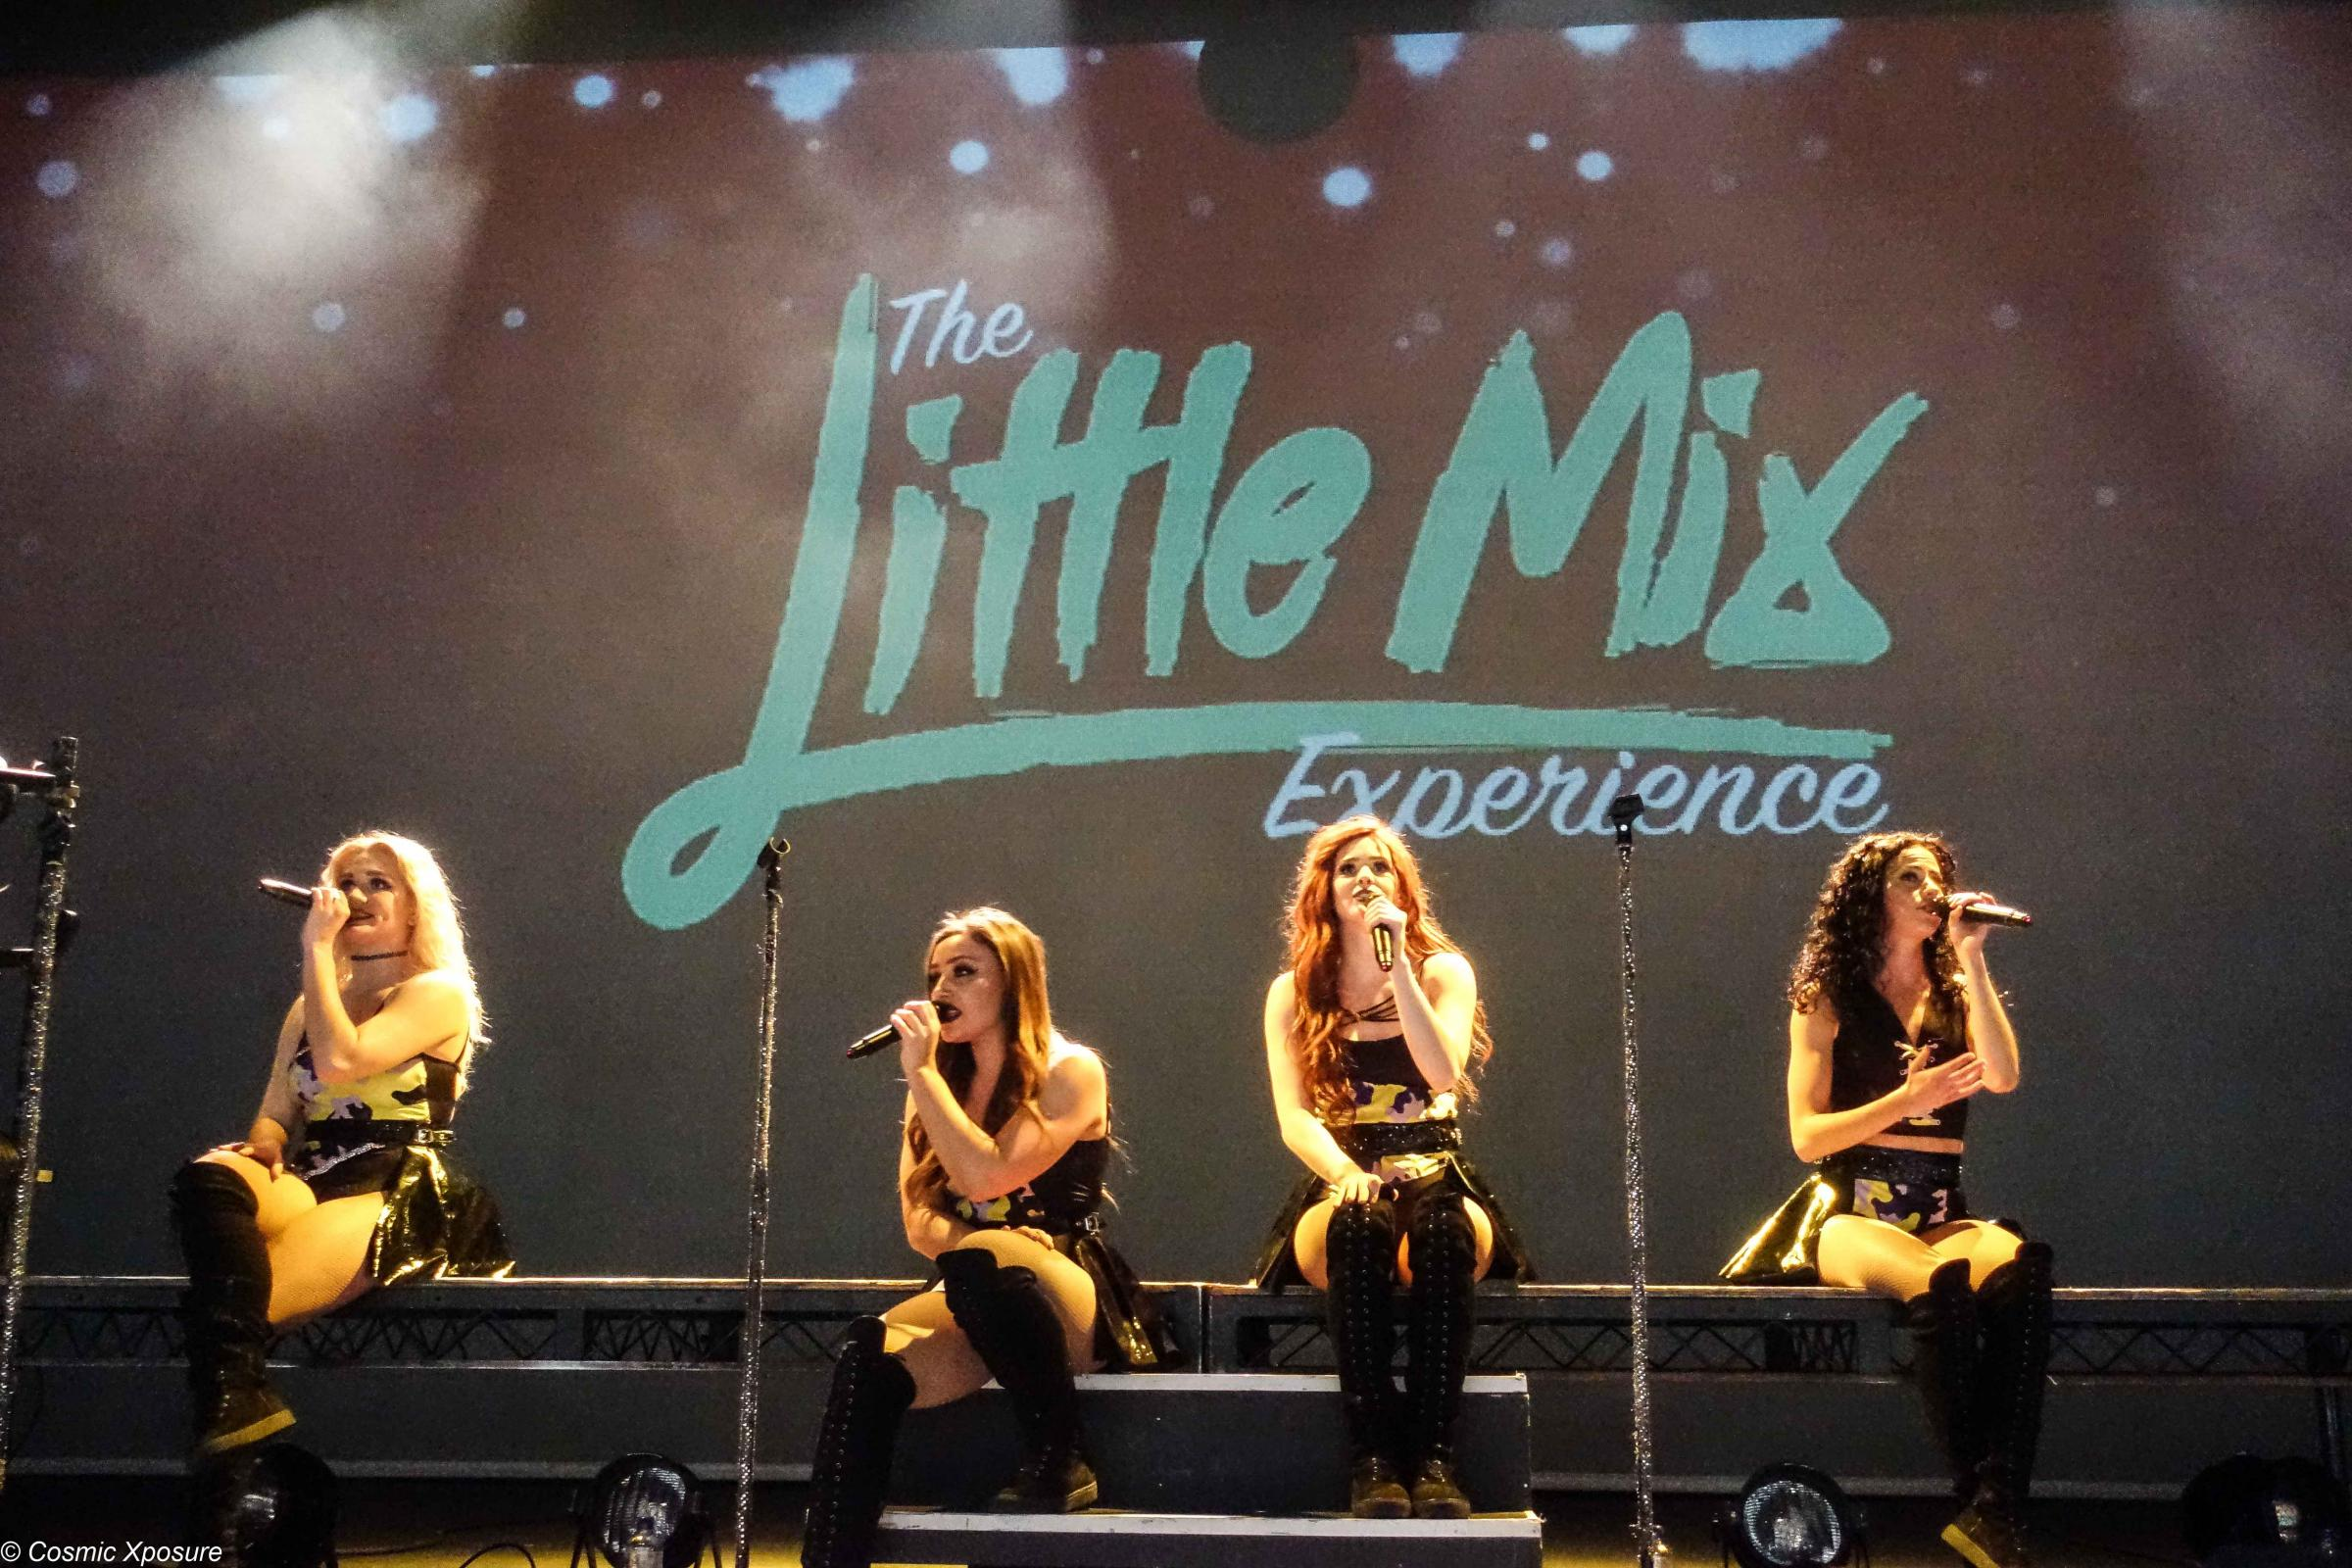 The Little Mix Expereience